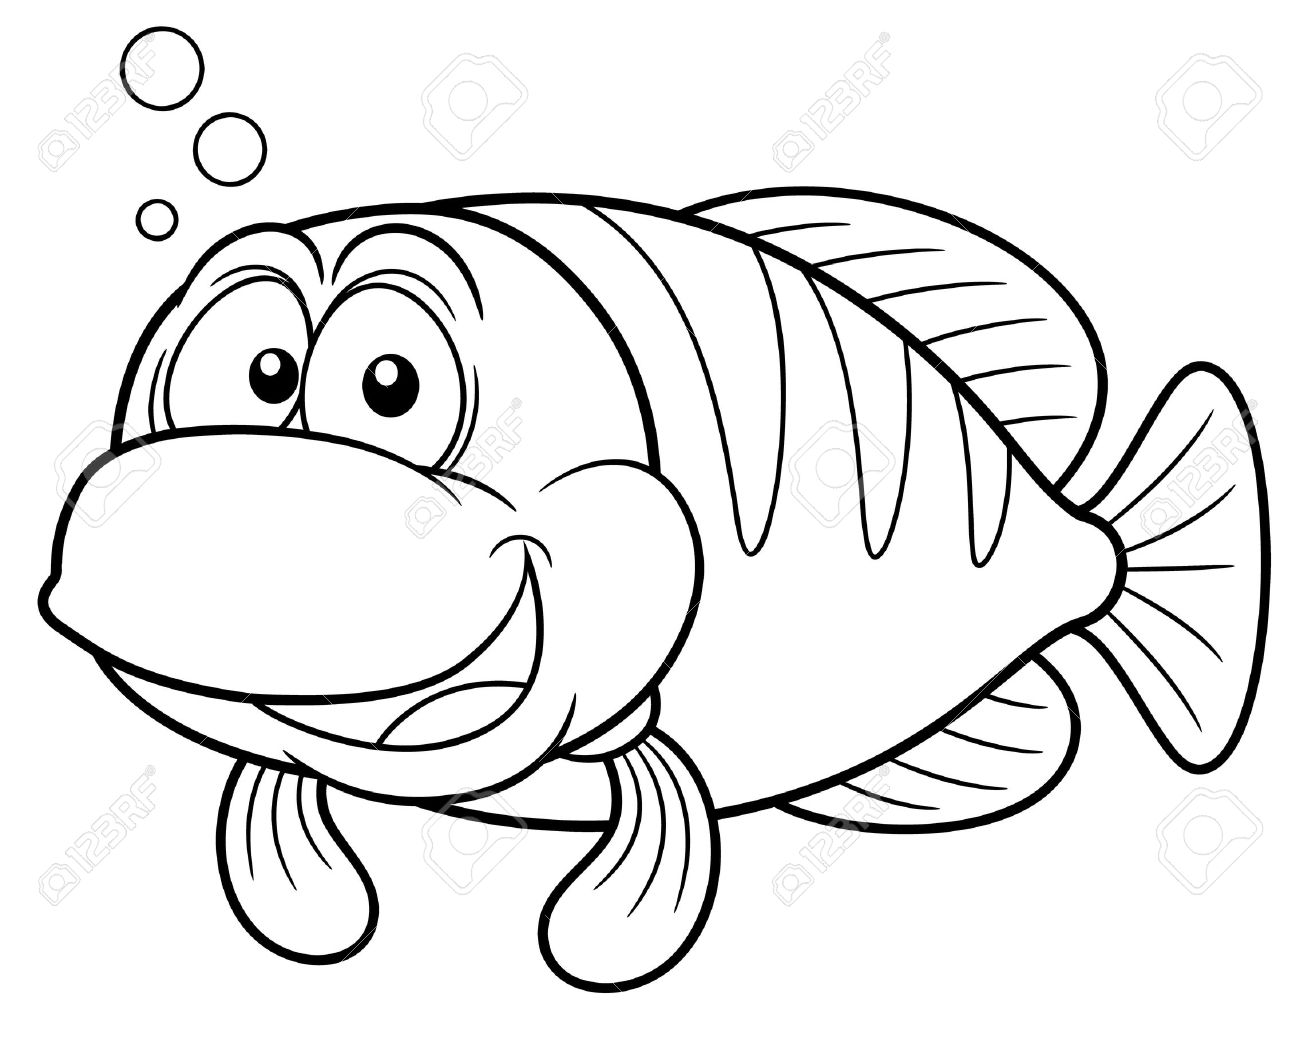 vector illustration of cartoon fish coloring book stock vector 18093413 - Fish Coloring Book